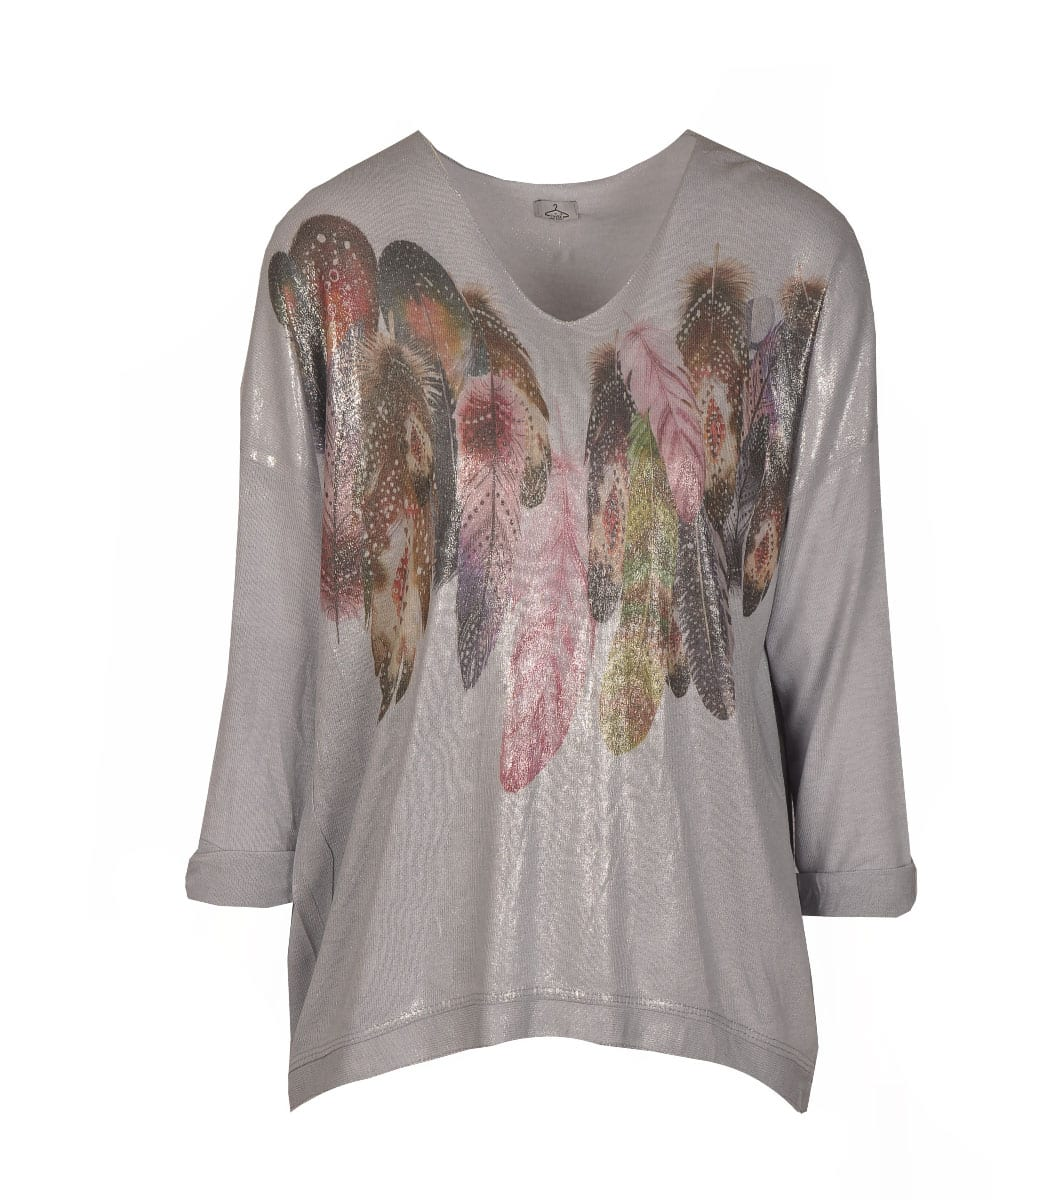 Giant feather print top